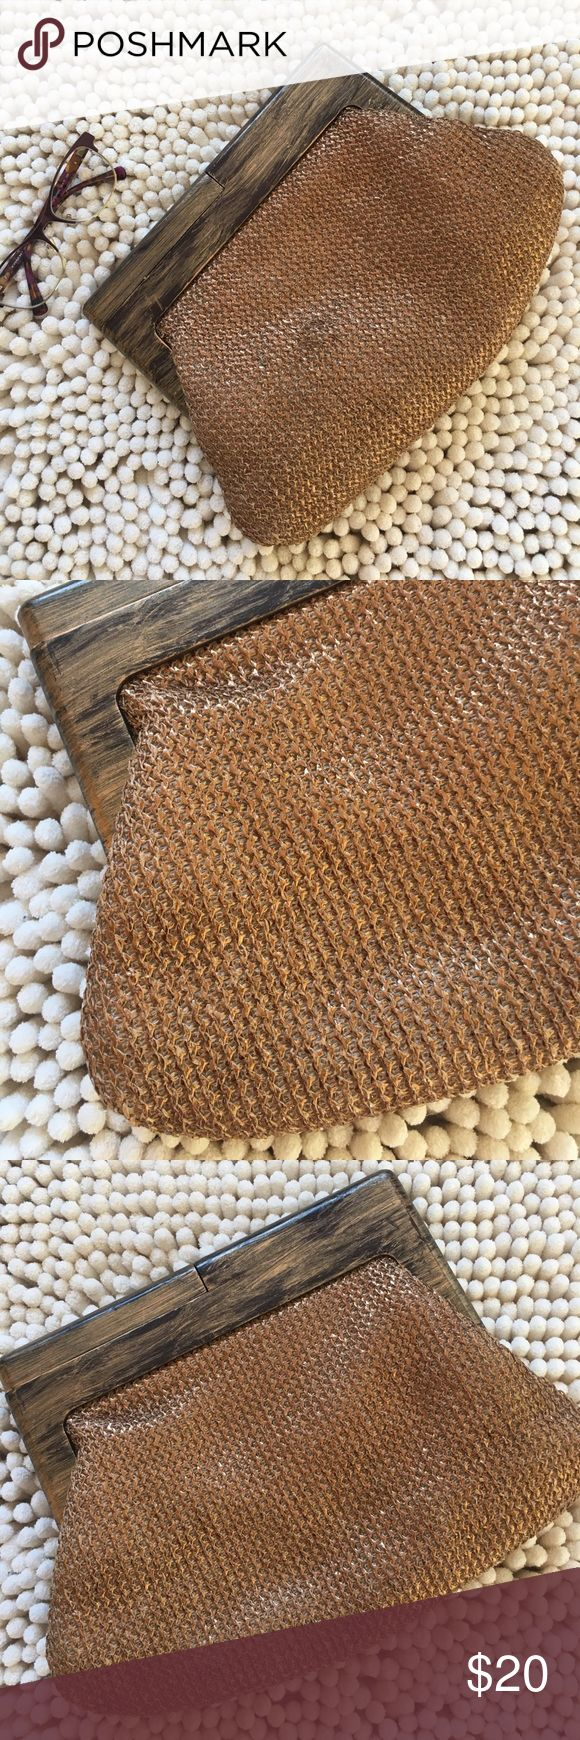 Melie Bianco Los Angeles Vegan Clutch Excellent condition vegan bag wood handles knit fabric magnetic closures one pocket inside zips close perfect for your phone designed in Los Angeles 9 inches deep 12 inches wide metallic finish super cute don't think it was ever used no rips no tears no stains non-smoking home💕 Milie Bianco Bags Clutches & Wristlets